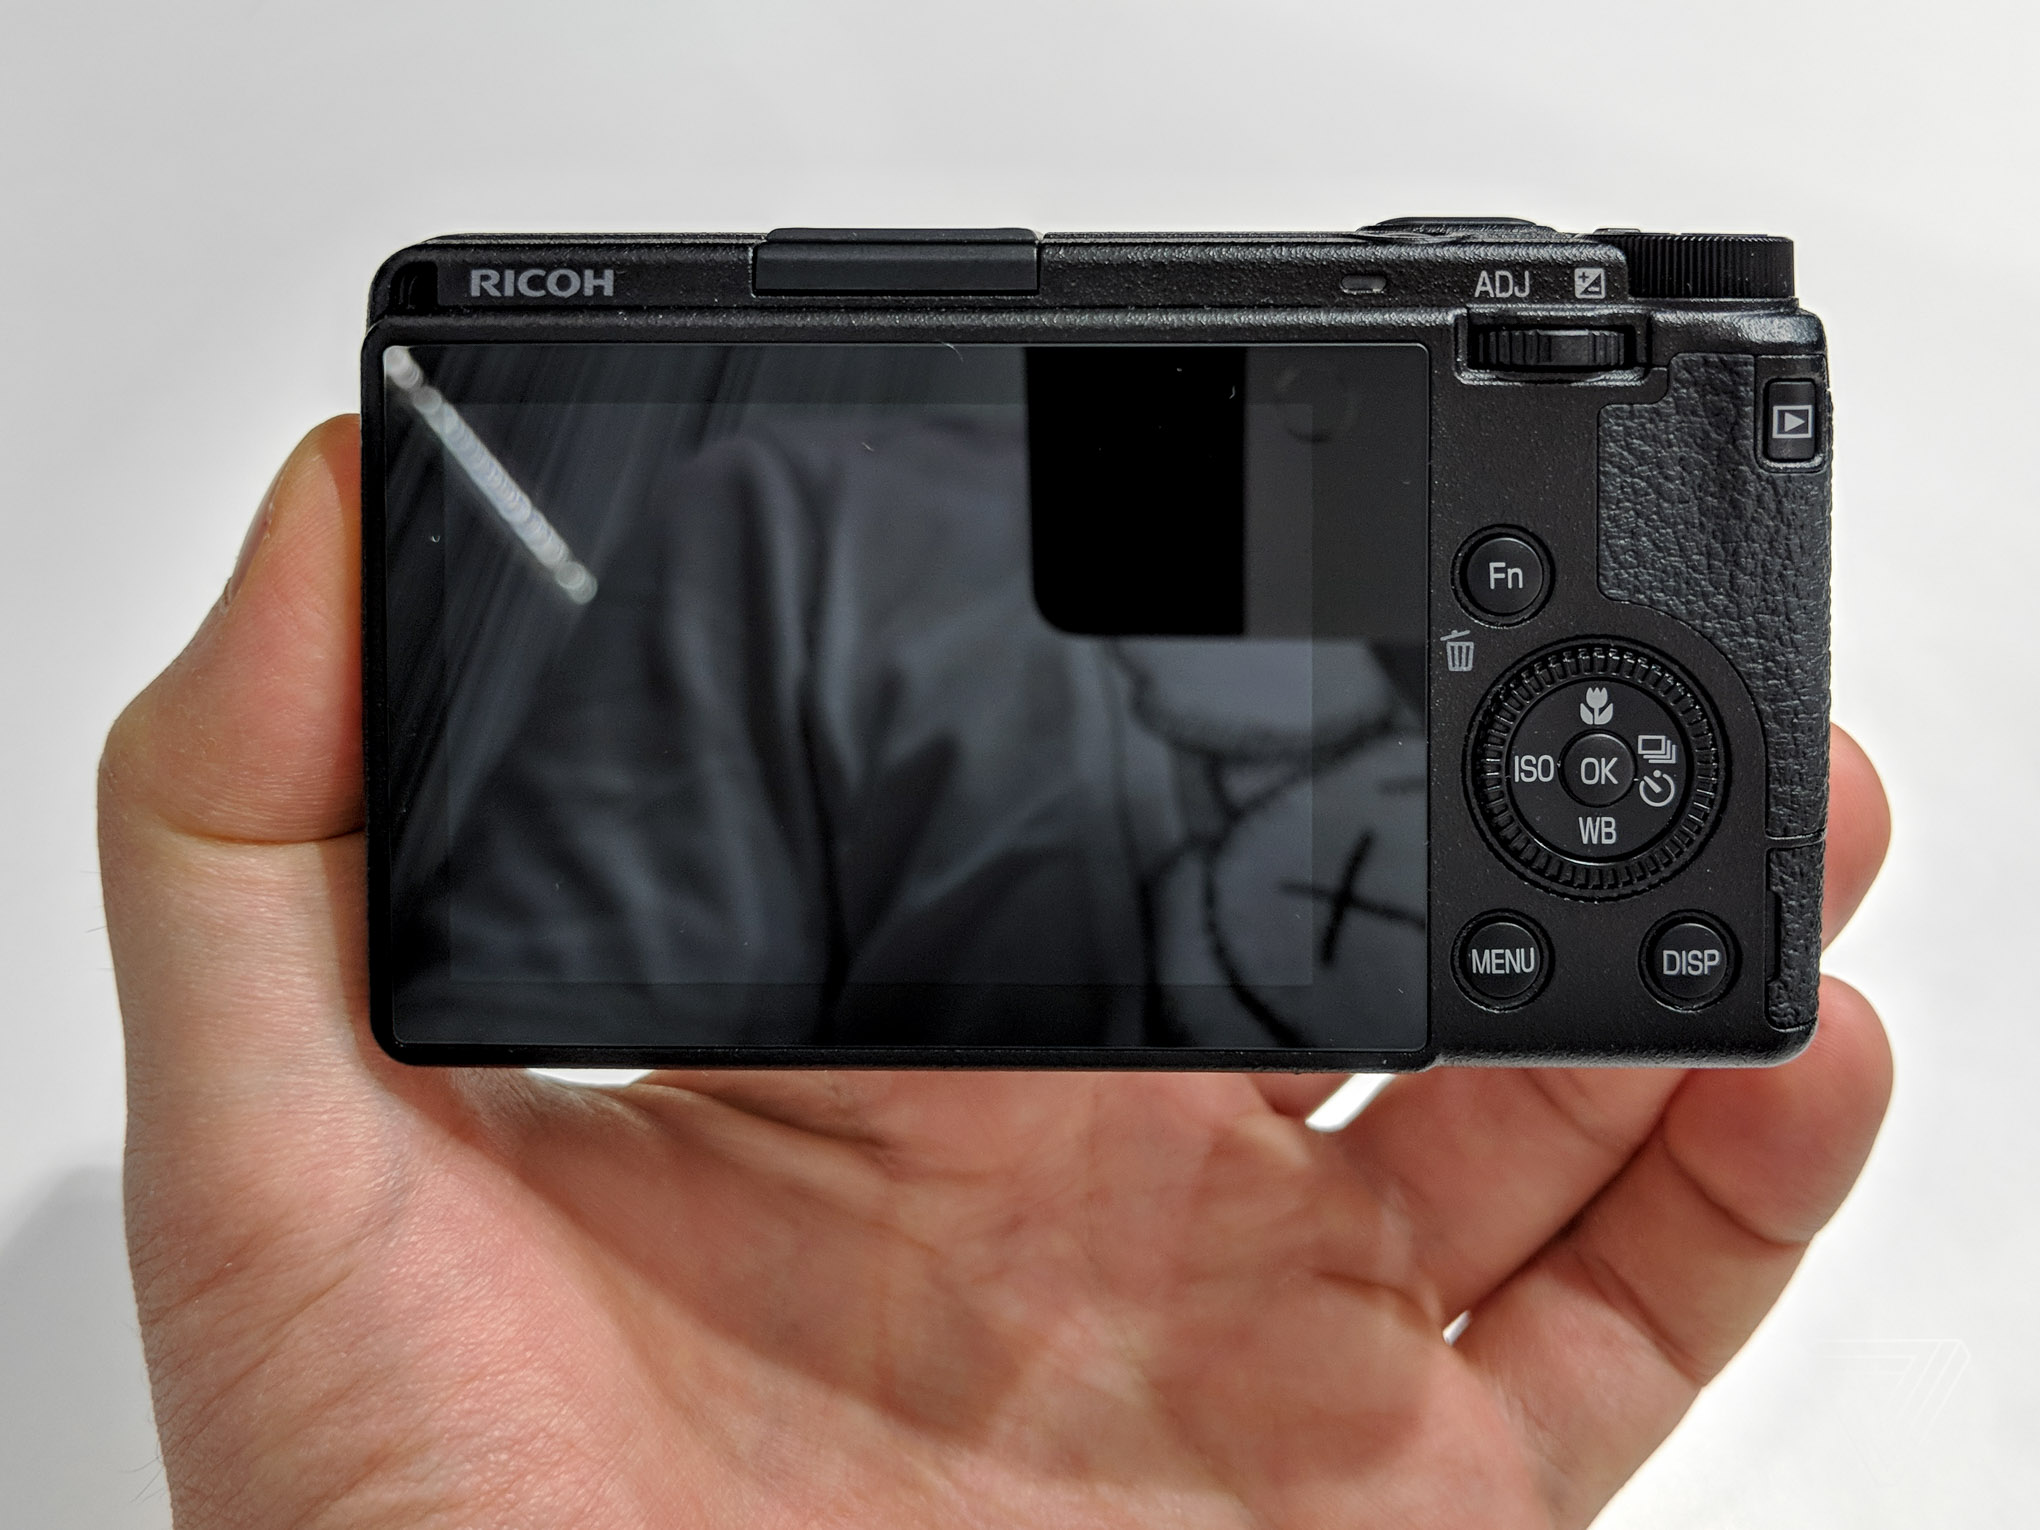 Ricoh's GRIII camera is just tiny enough to survive the smartphone